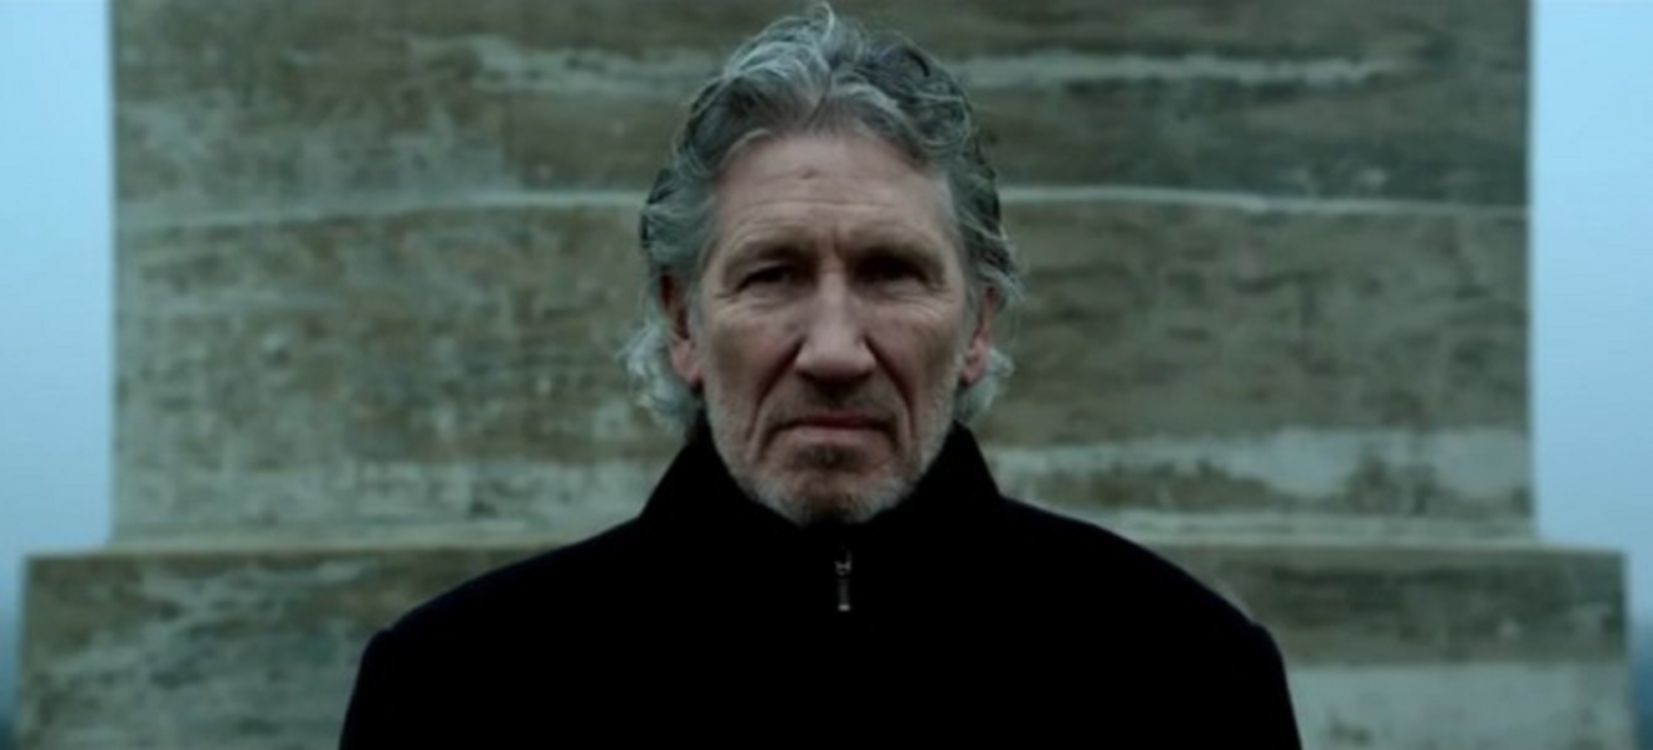 roger-waters-wall-film-e1436529188255